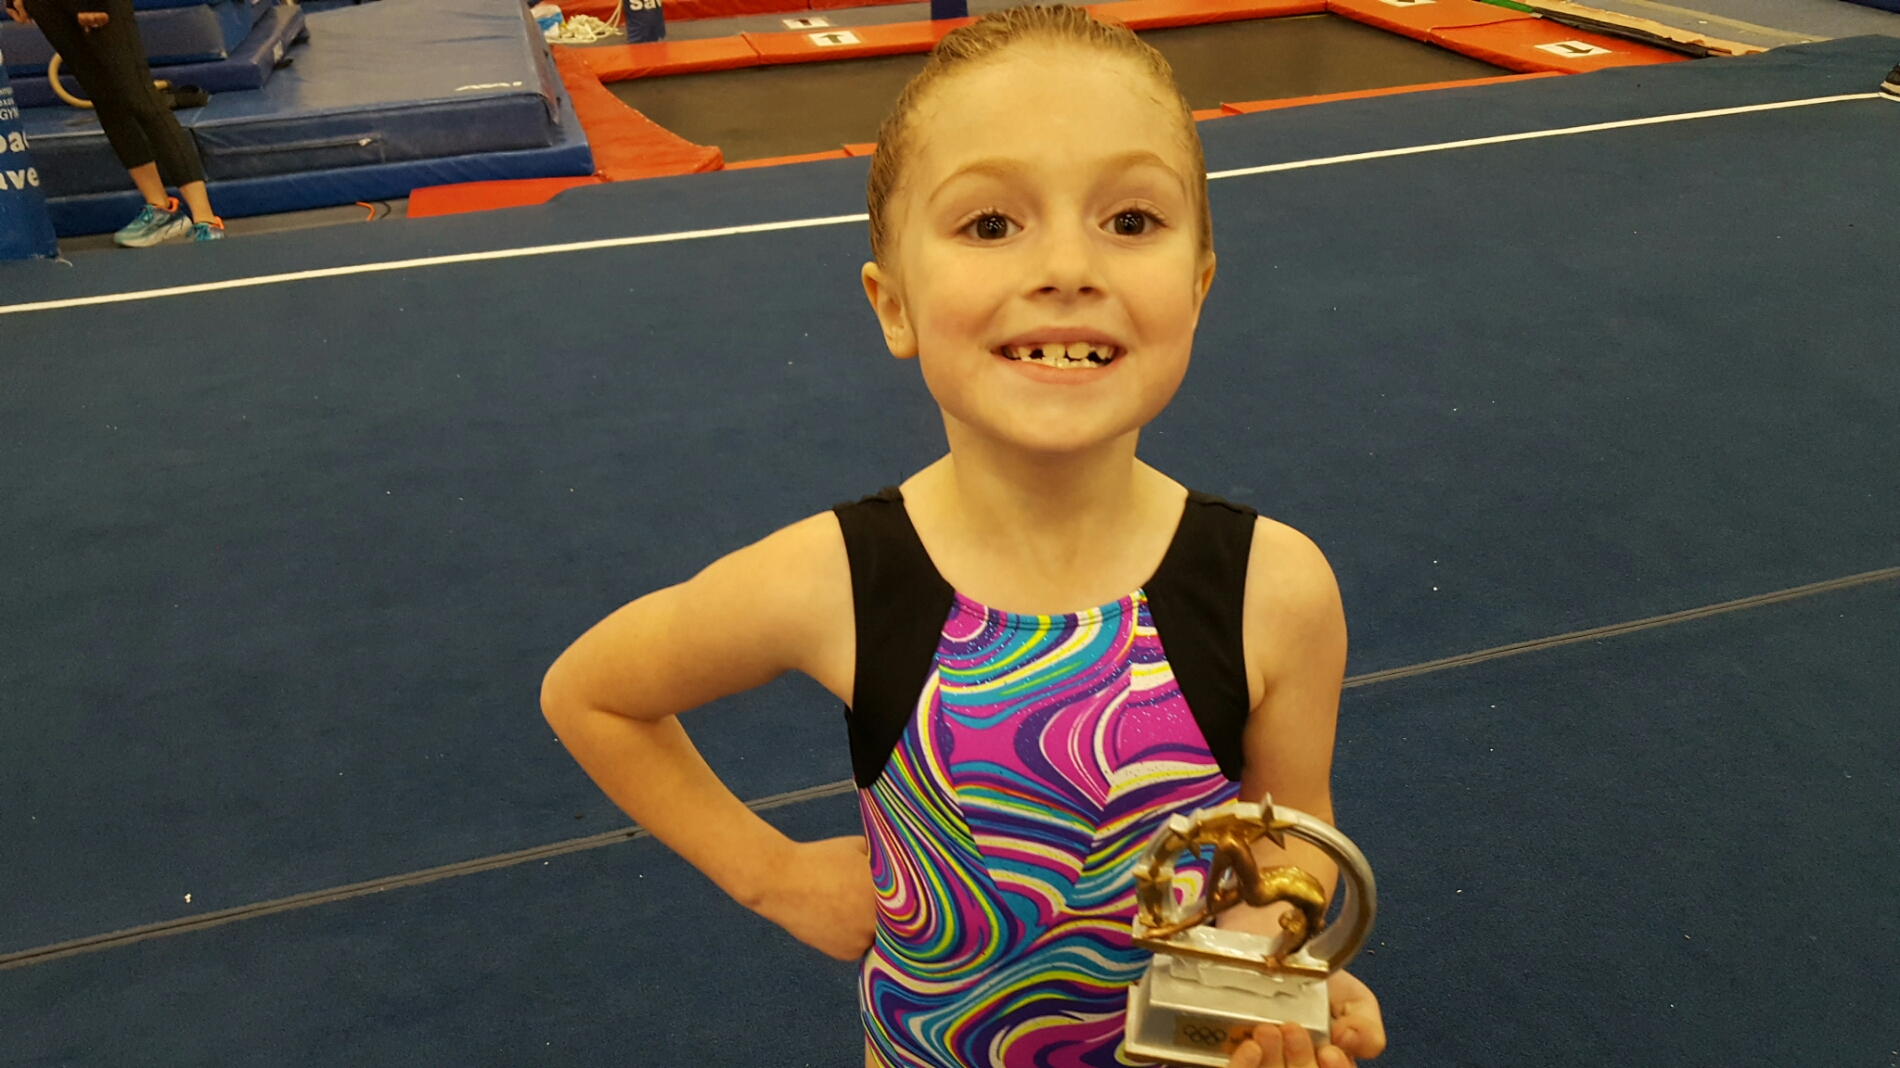 Westside Dance and Gymnastics Academy | 11632 SW Pacific Hwy, Tigard, OR, 97223 | +1 (503) 639-5388